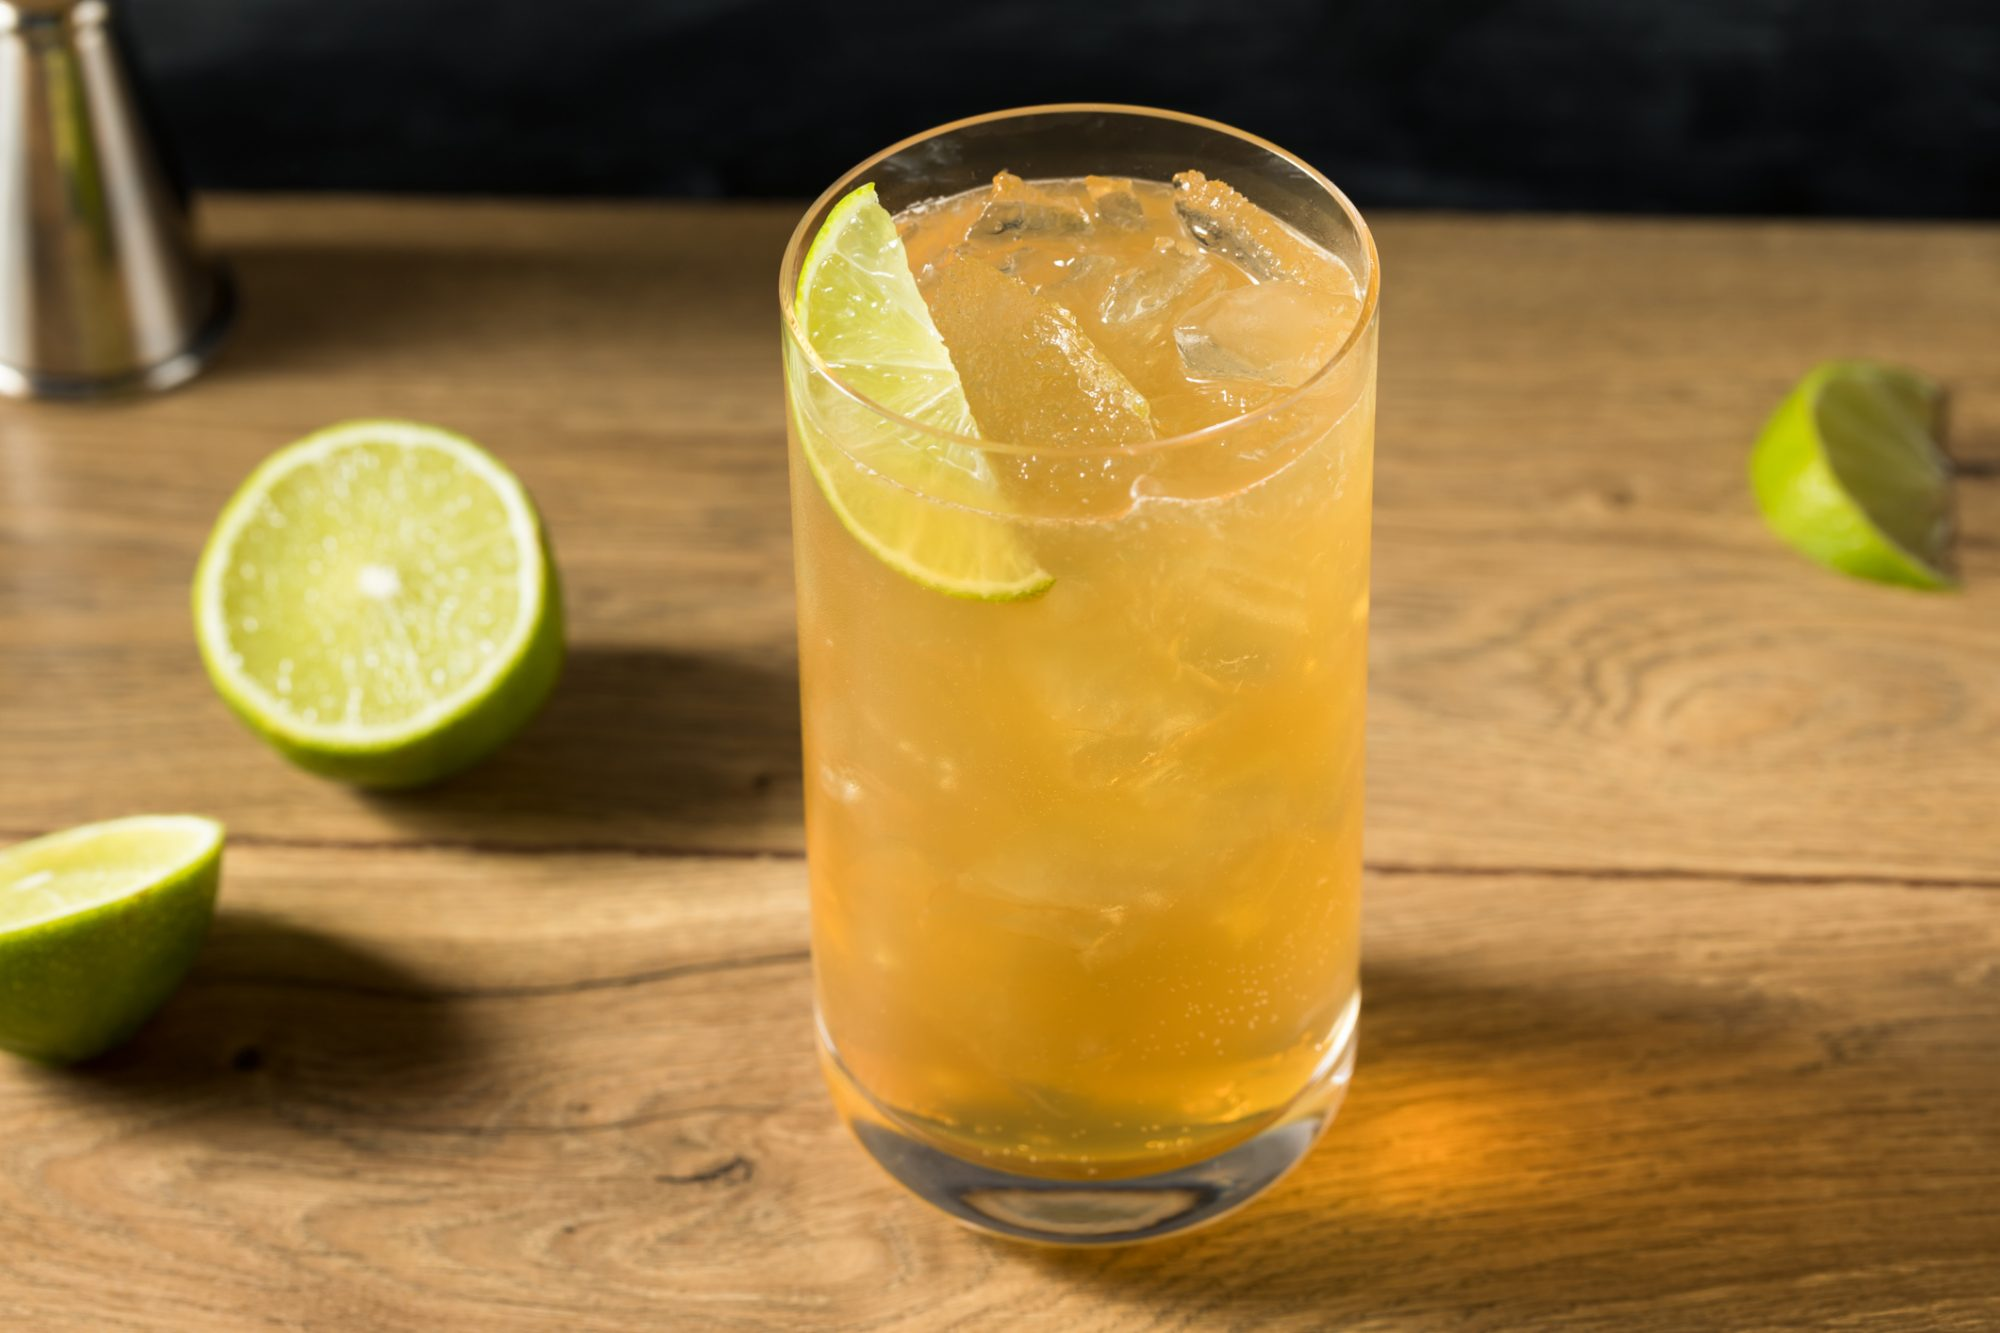 What Is a Kentucky Horsefeather? This Fizzy, Gingery Cocktail Is a Guaranteed Hit